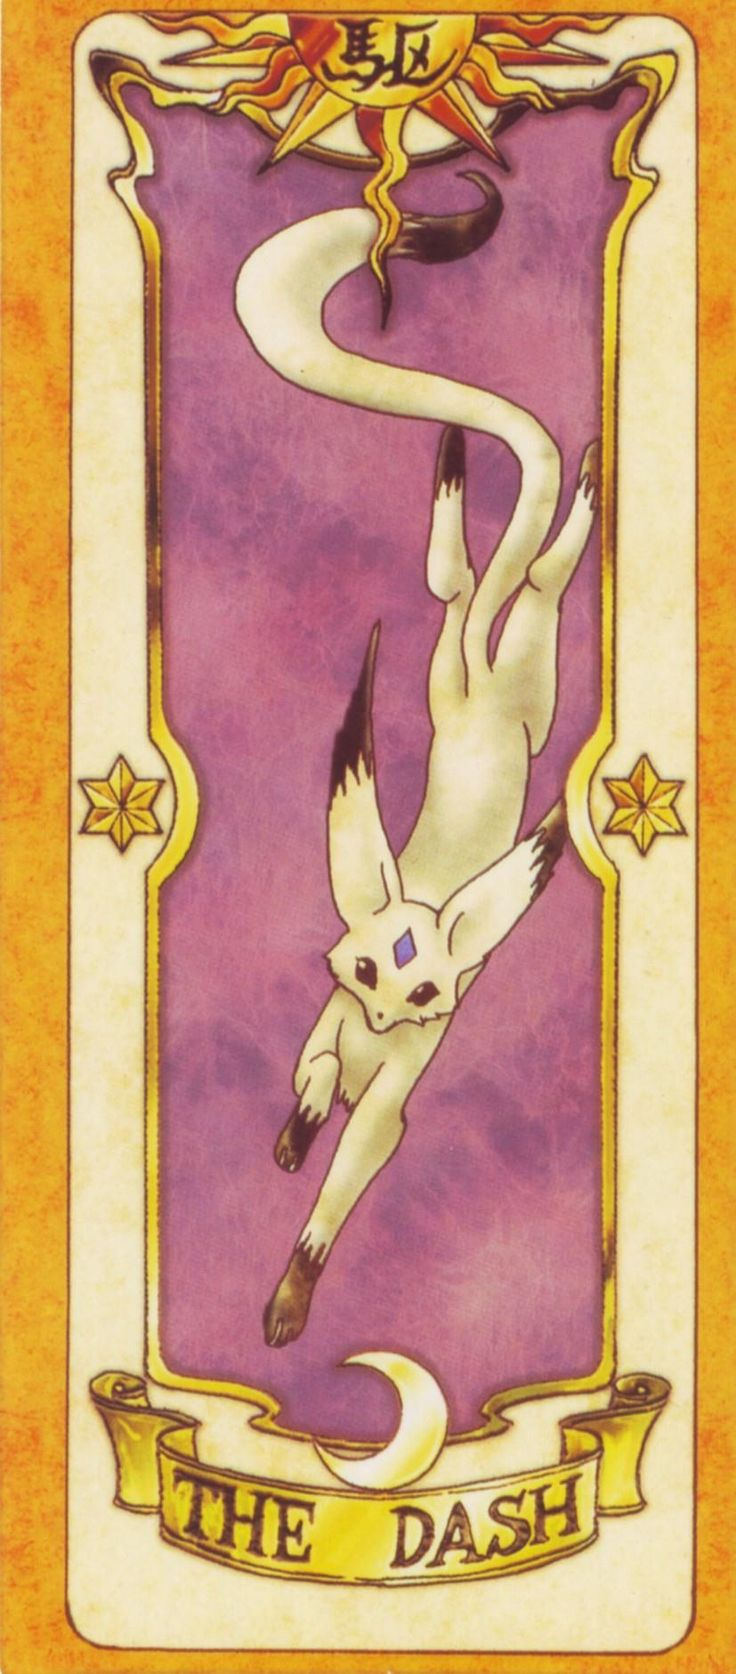 Clow Cards (Cardcaptor Sakura) - Dash Card. This was the first episode I…